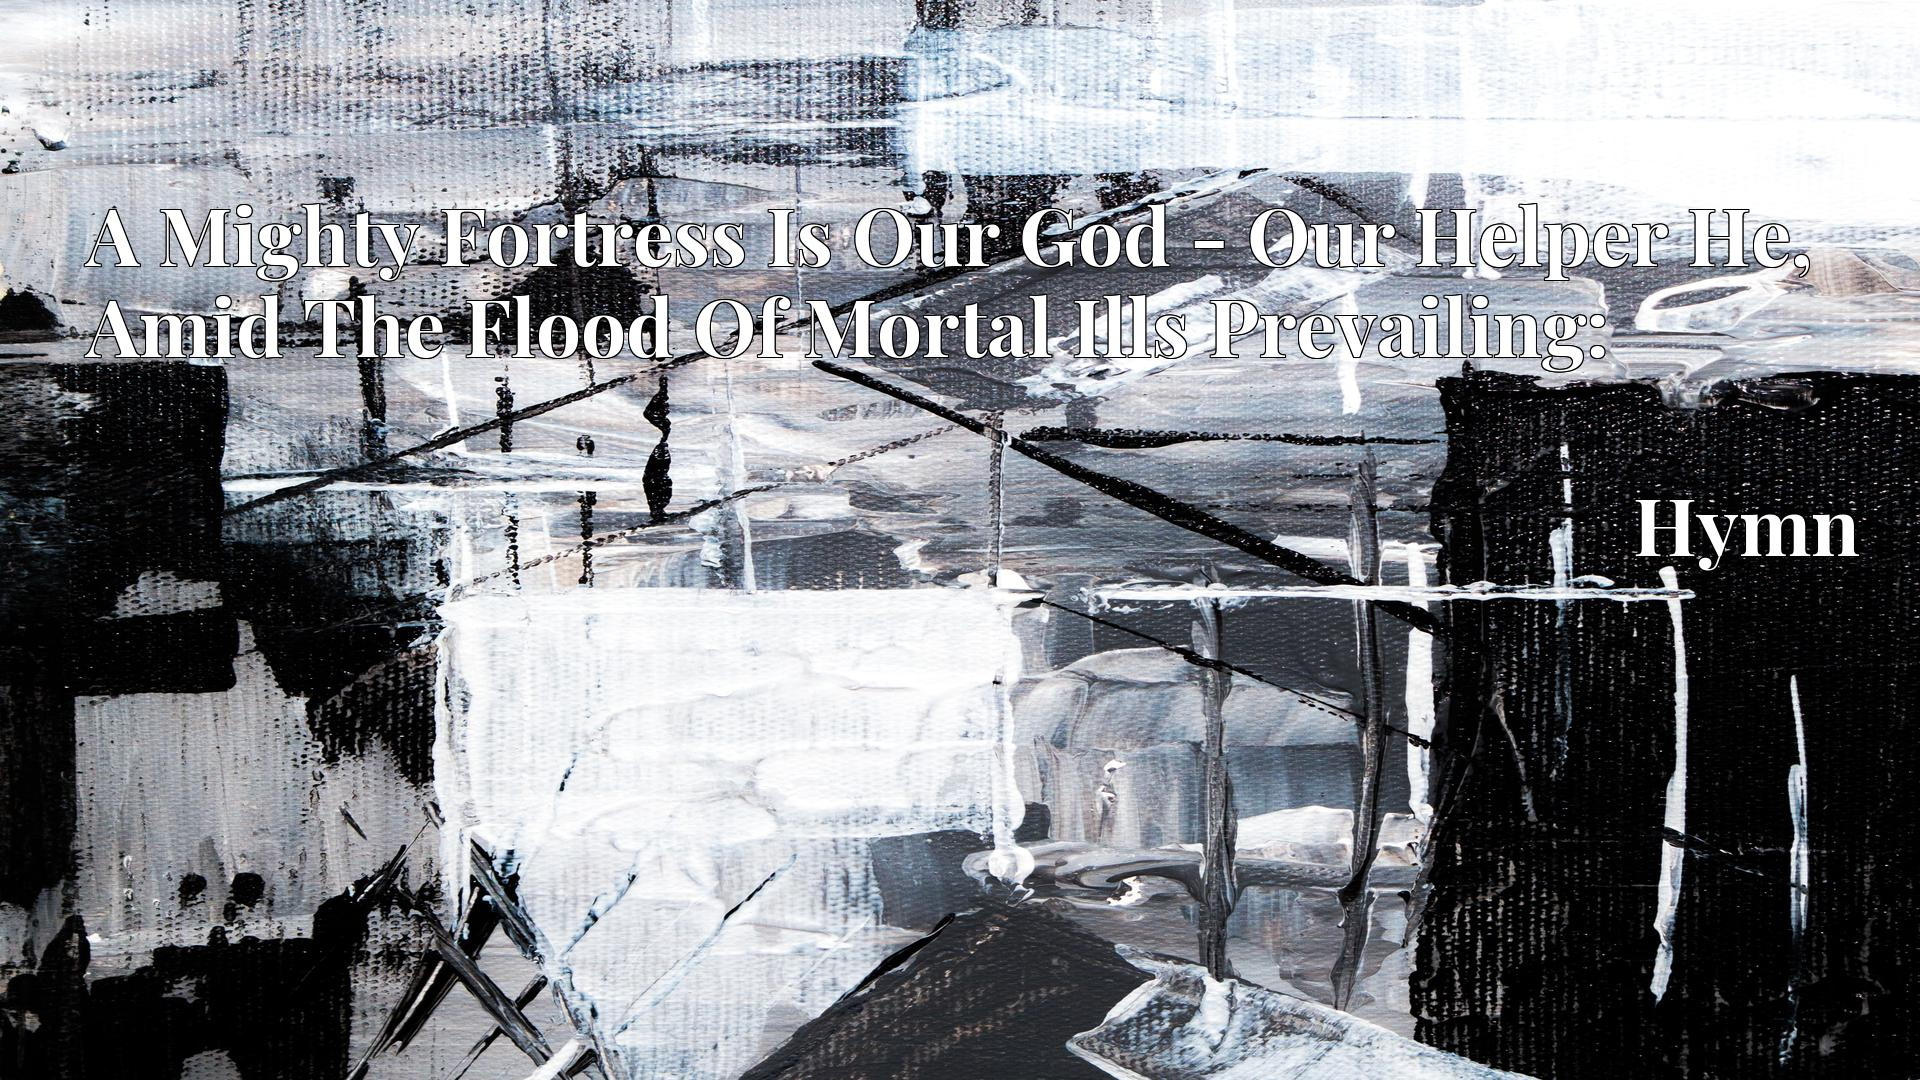 A Mighty Fortress Is Our God - Our Helper He, Amid The Flood Of Mortal Ills Prevailing: Hymn